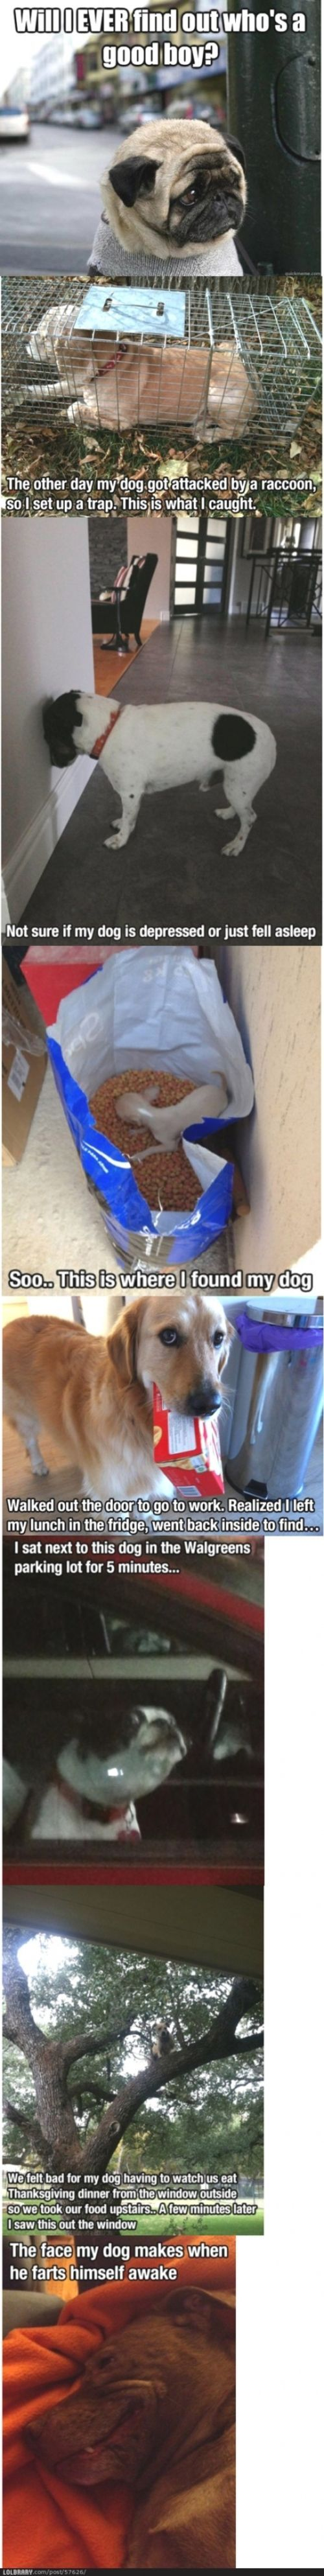 If you see a dog with it's head against the wall like the third picture TELL A VET it's serious! That one isn't funny...